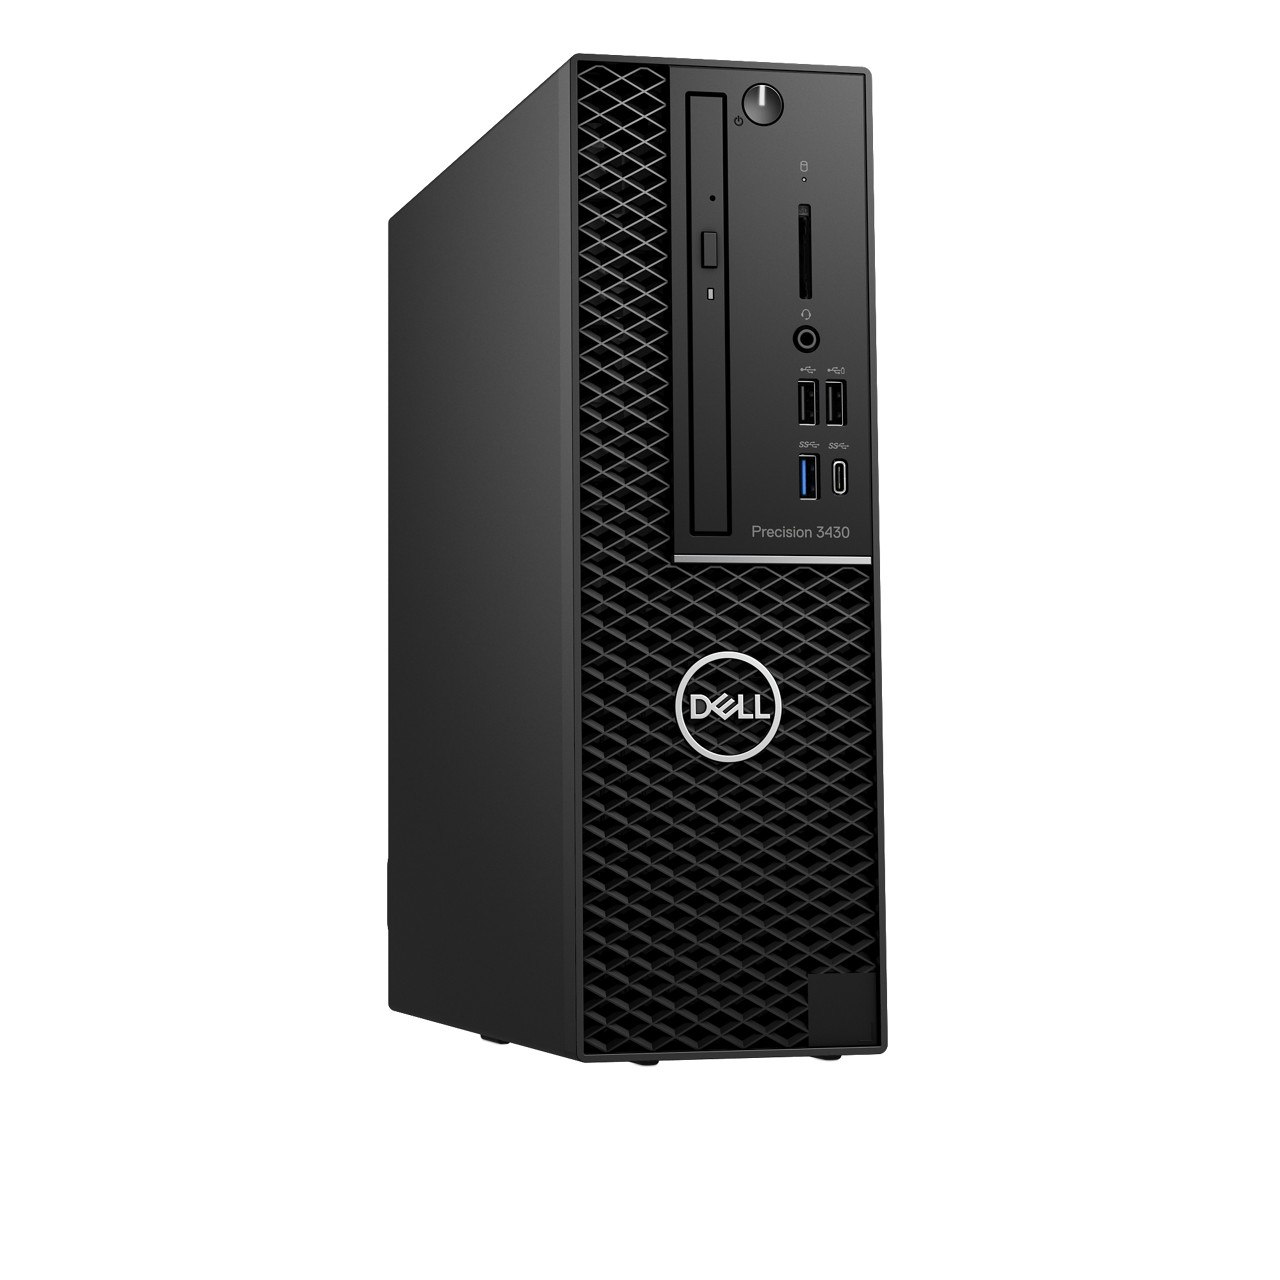 Dell Precision 3430 SF i7-8700/16GB/256GB SSD/USB-C/DP/W10P/3RNBD/Černý